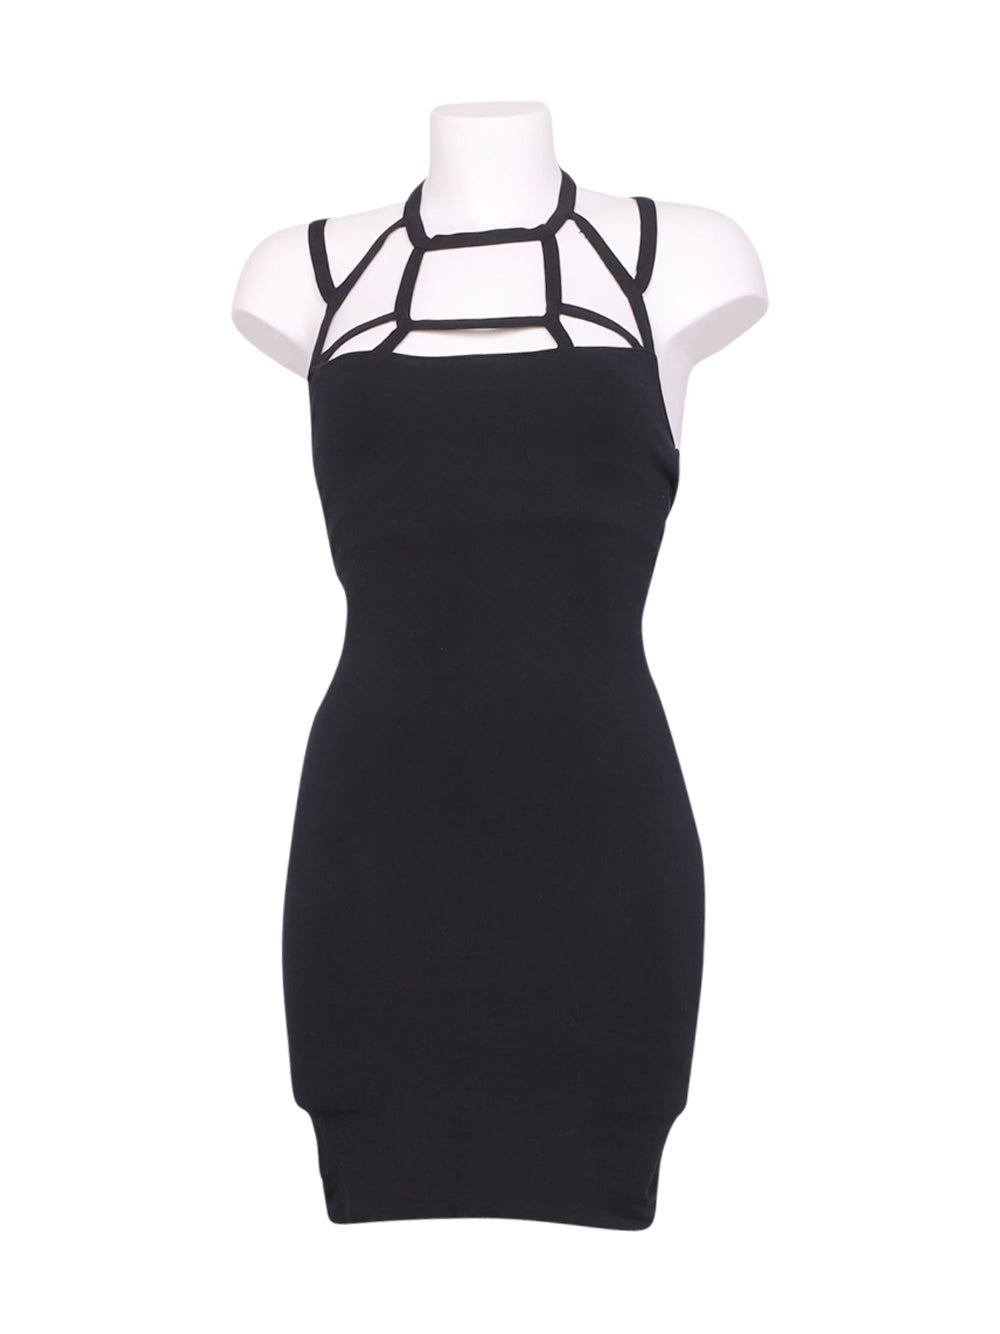 Front photo of Preloved Asos Black Woman's dress - size 10/M